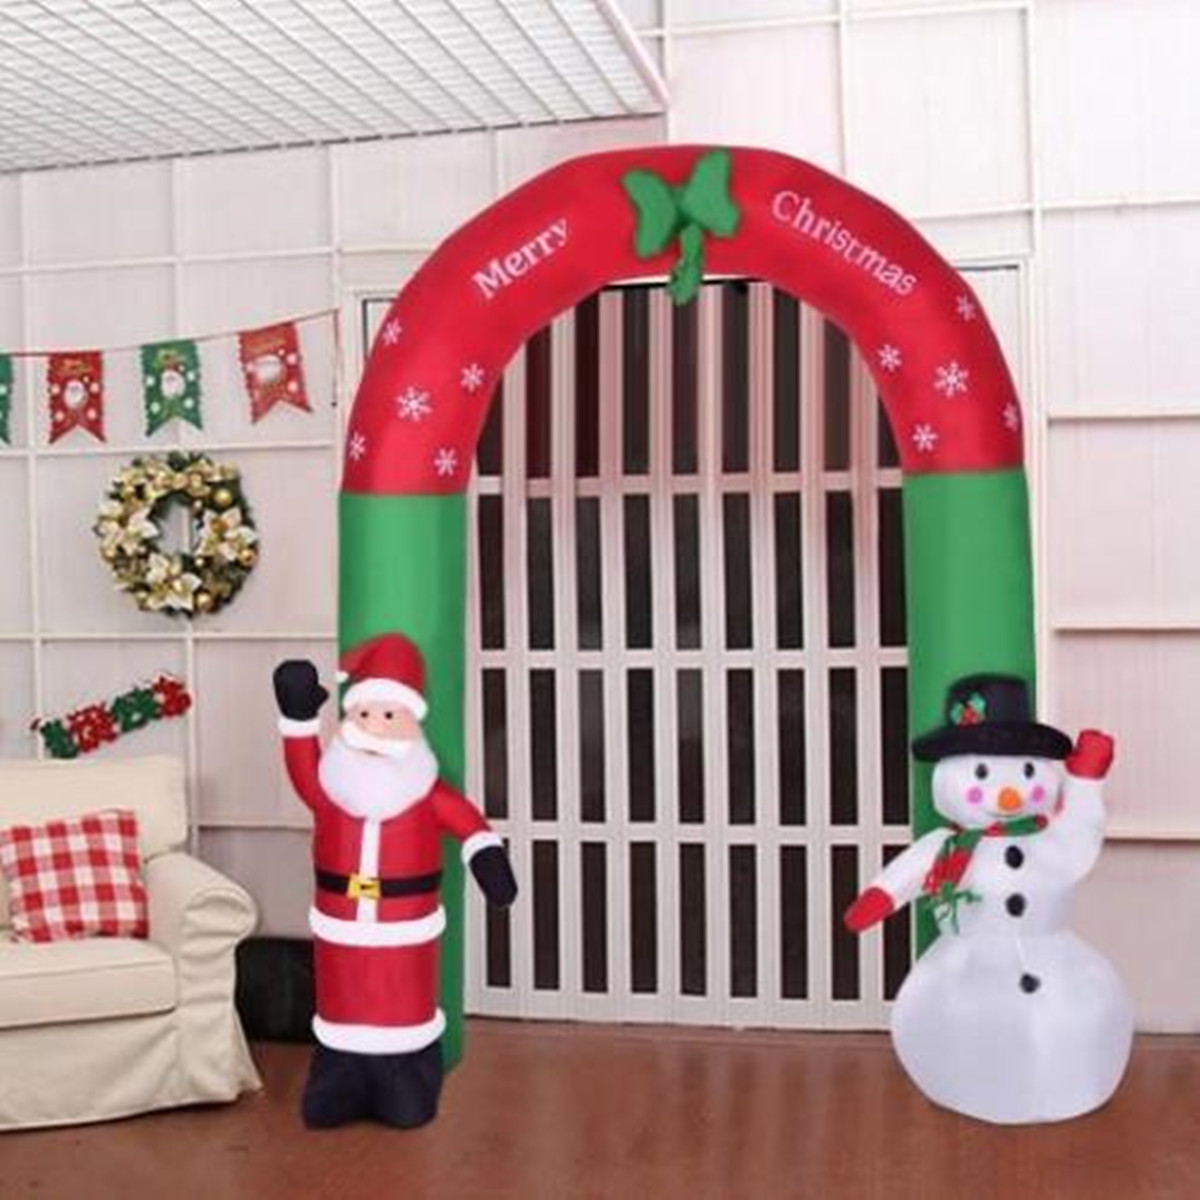 2.4m Inflatable Christmas Arch Santa Snowman Indoor Outdoor Decor Decorations